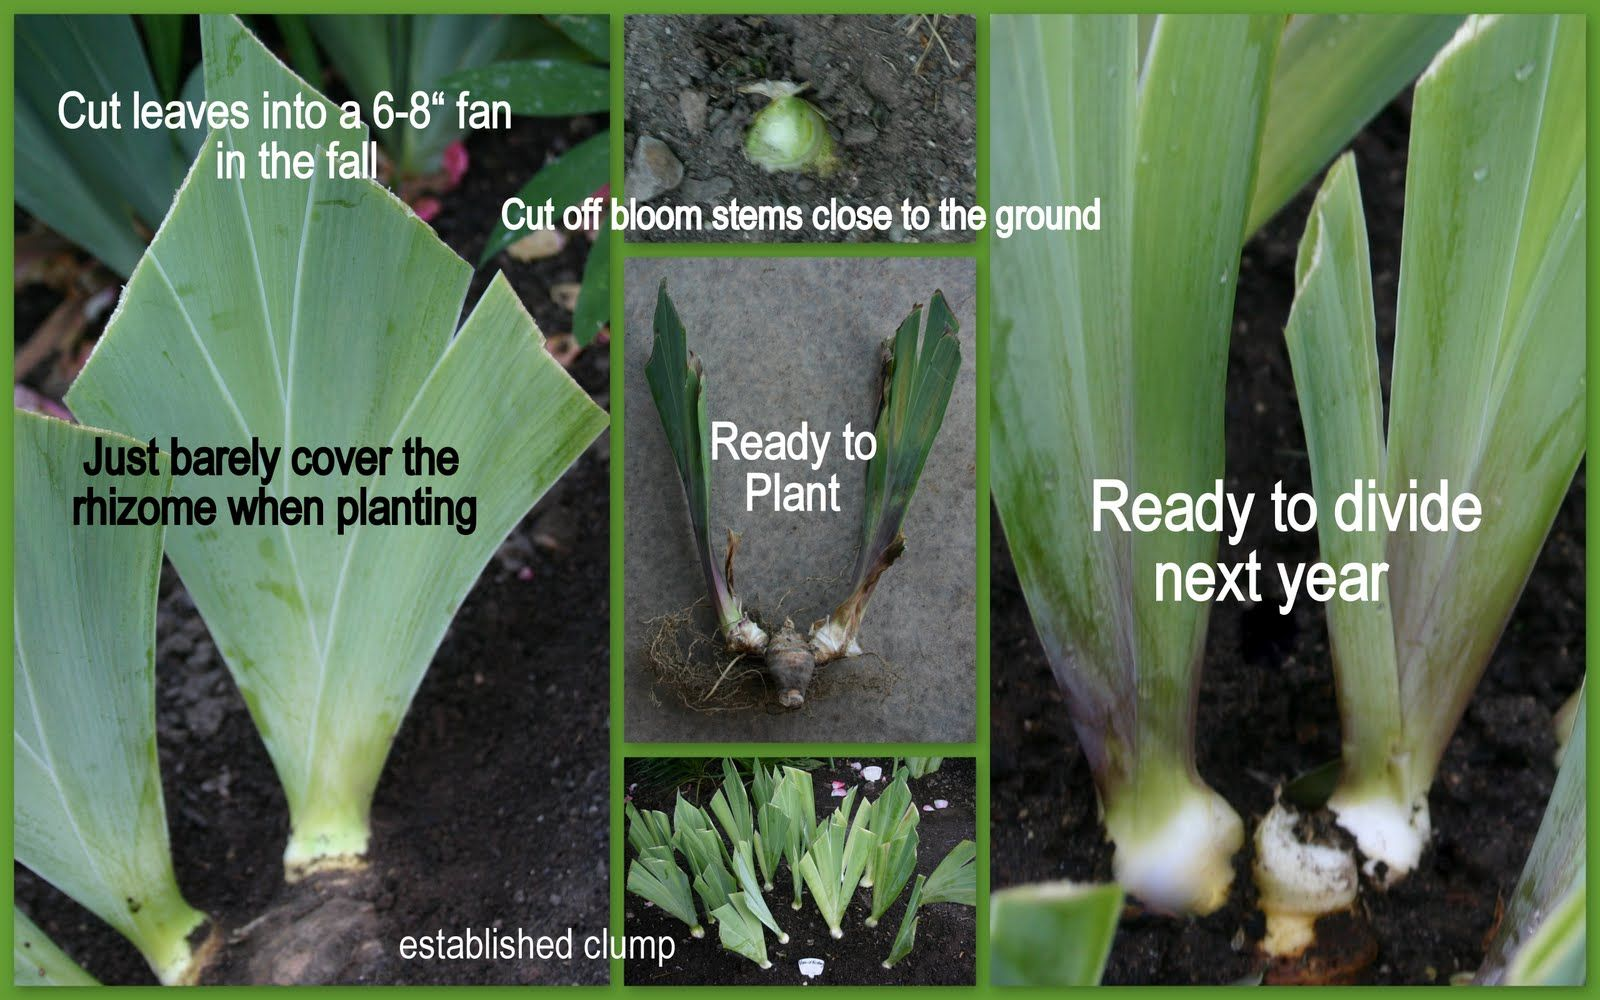 The Time To Plant Or Divide Tall Bearded Iris Iris Flowers Garden Growing Irises Plants